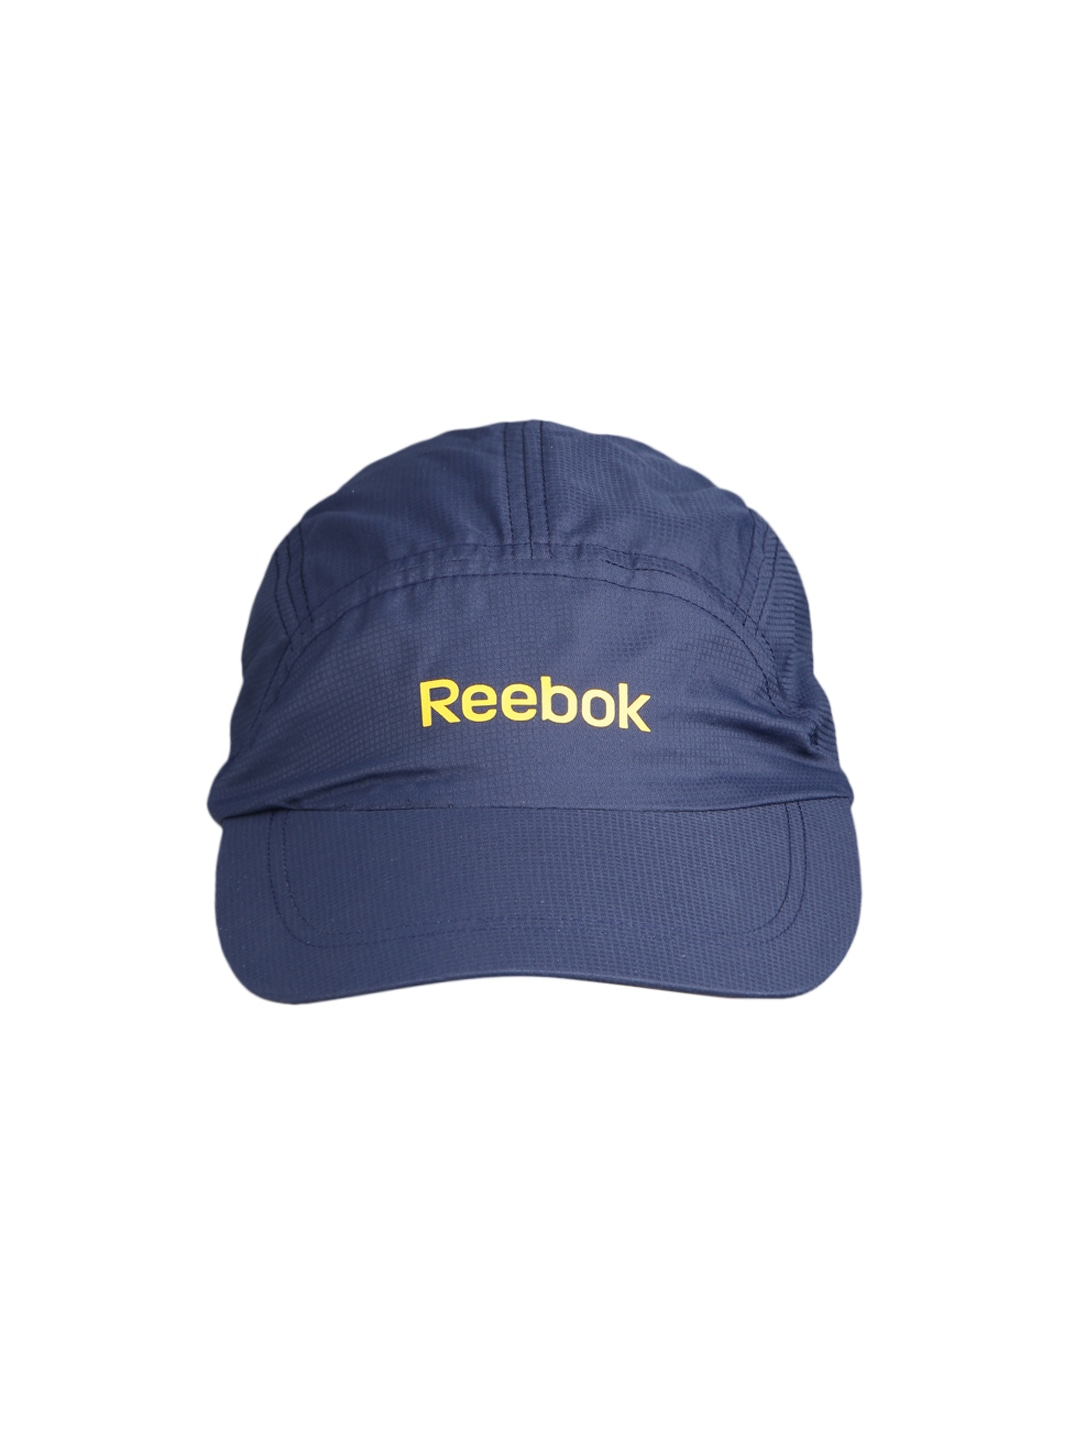 Reebok s02390 Unisex Navy Se Micro Sports Cap - Best Price in India ... 6a86cca022d